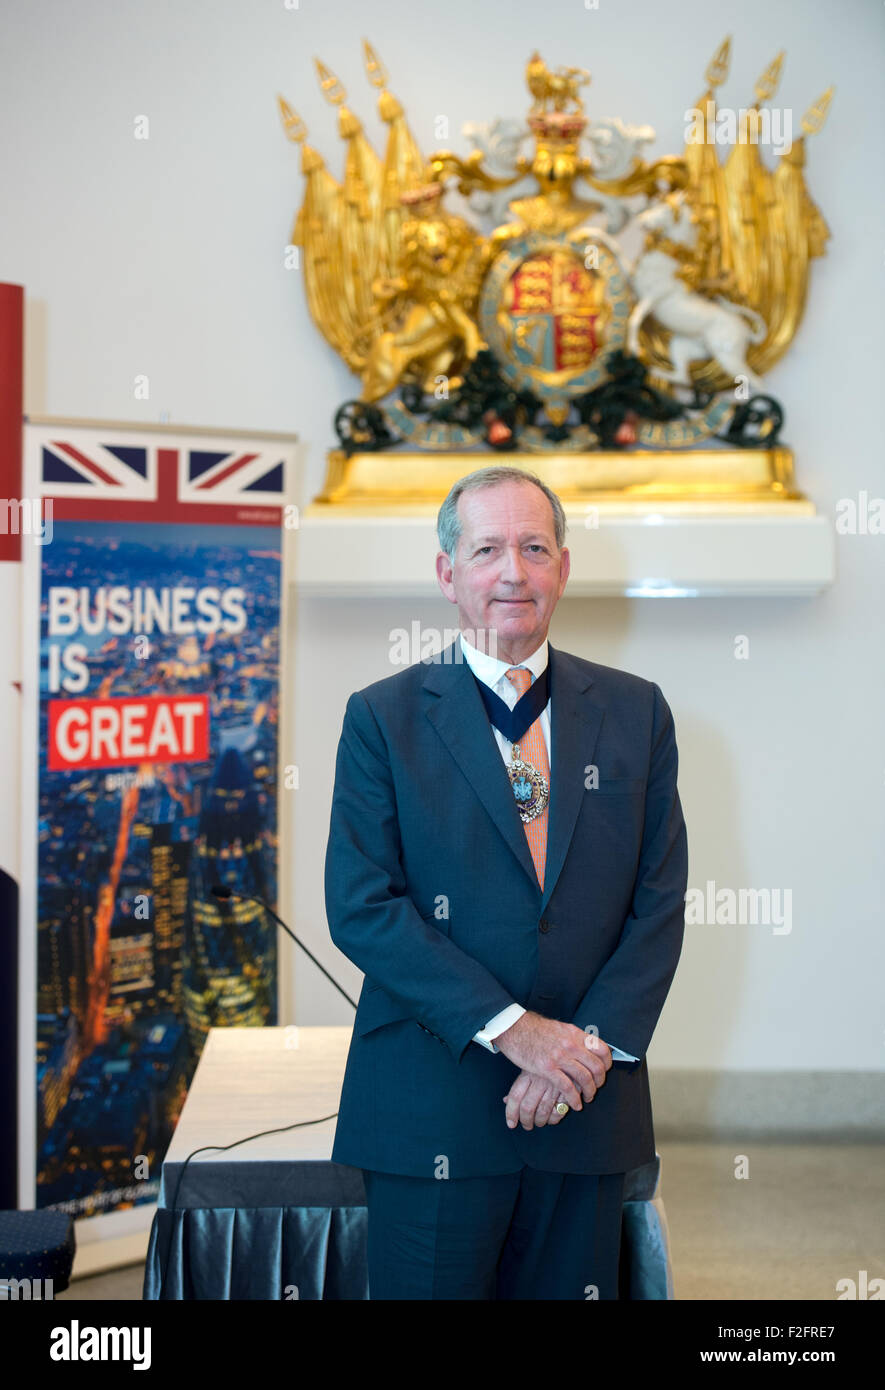 Hong Kong. 18th September, 2015. Alderman Alan Yarrow, The Lord Mayor of London, poses in the Foyer of the British - Stock Image